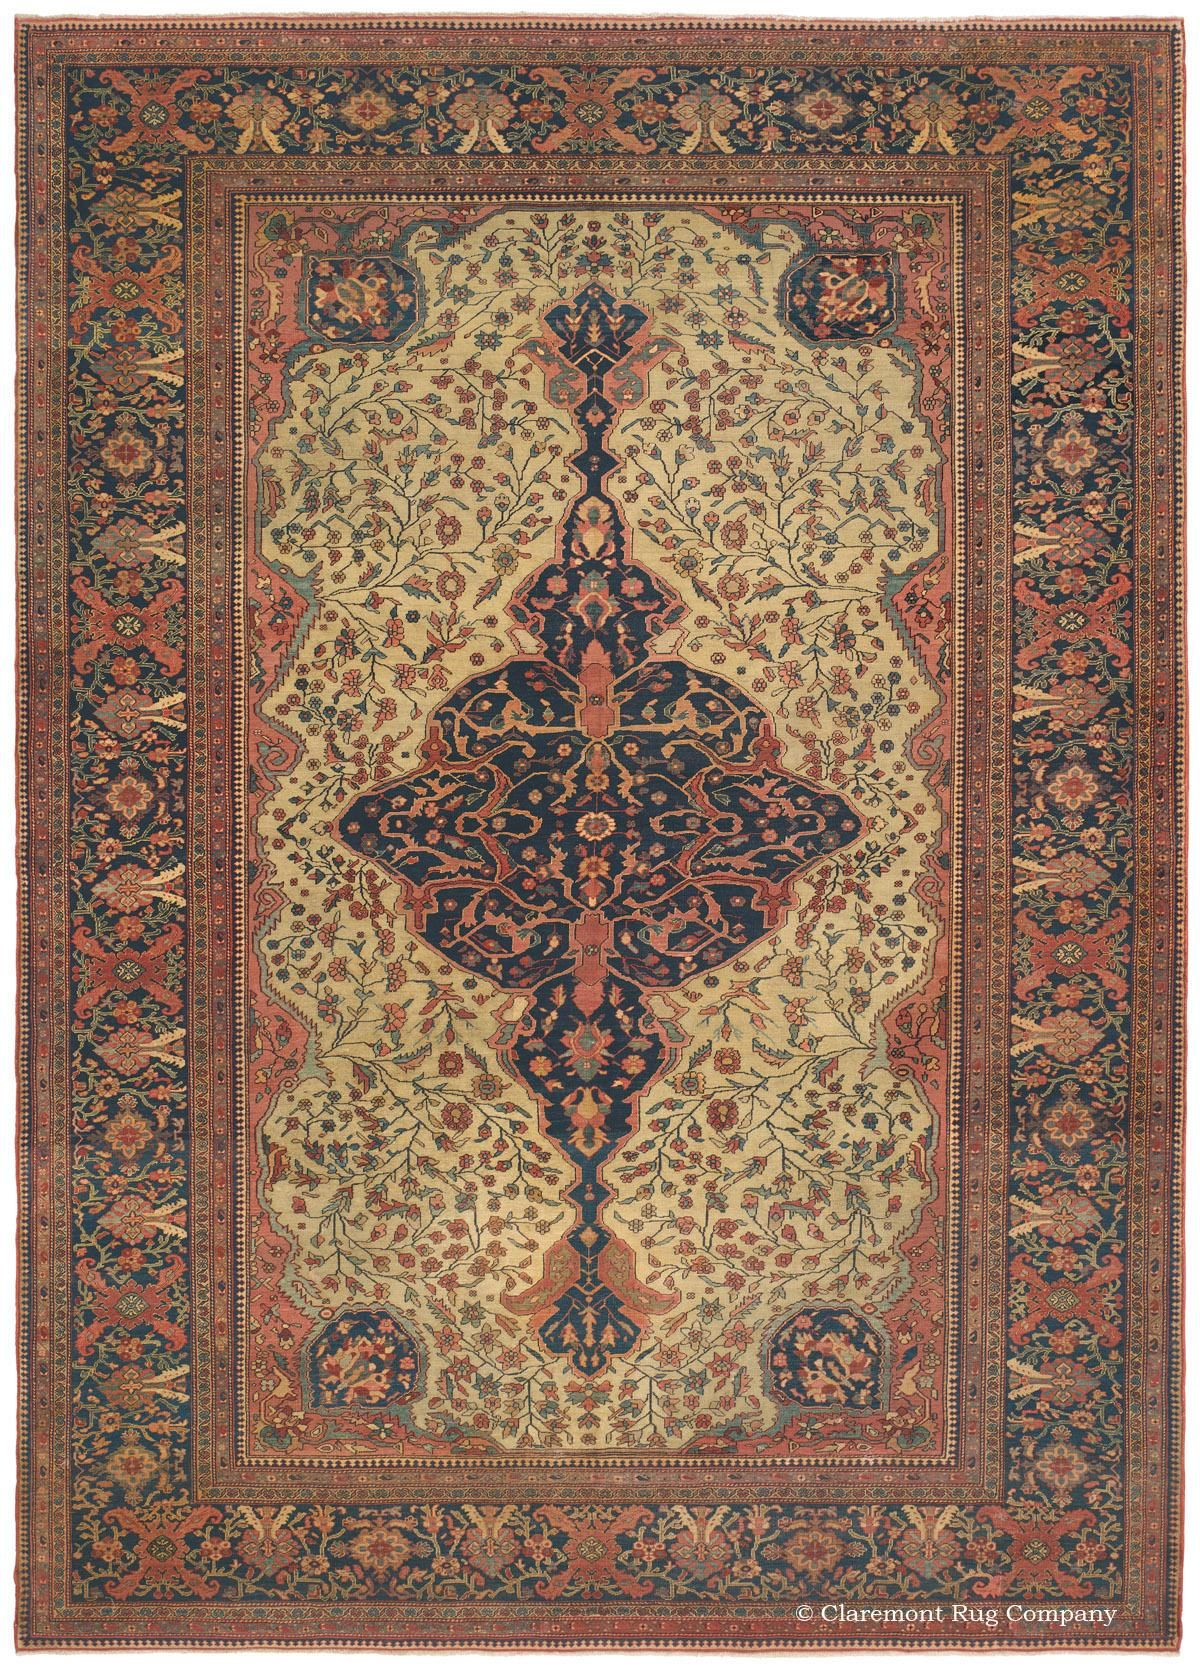 Ferahan Sarouk West Central Persian 8ft 8in X 12ft 3in 3rd Quarter 19th Century Persian Rug Designs Carpet Handmade Antique Oriental Rugs